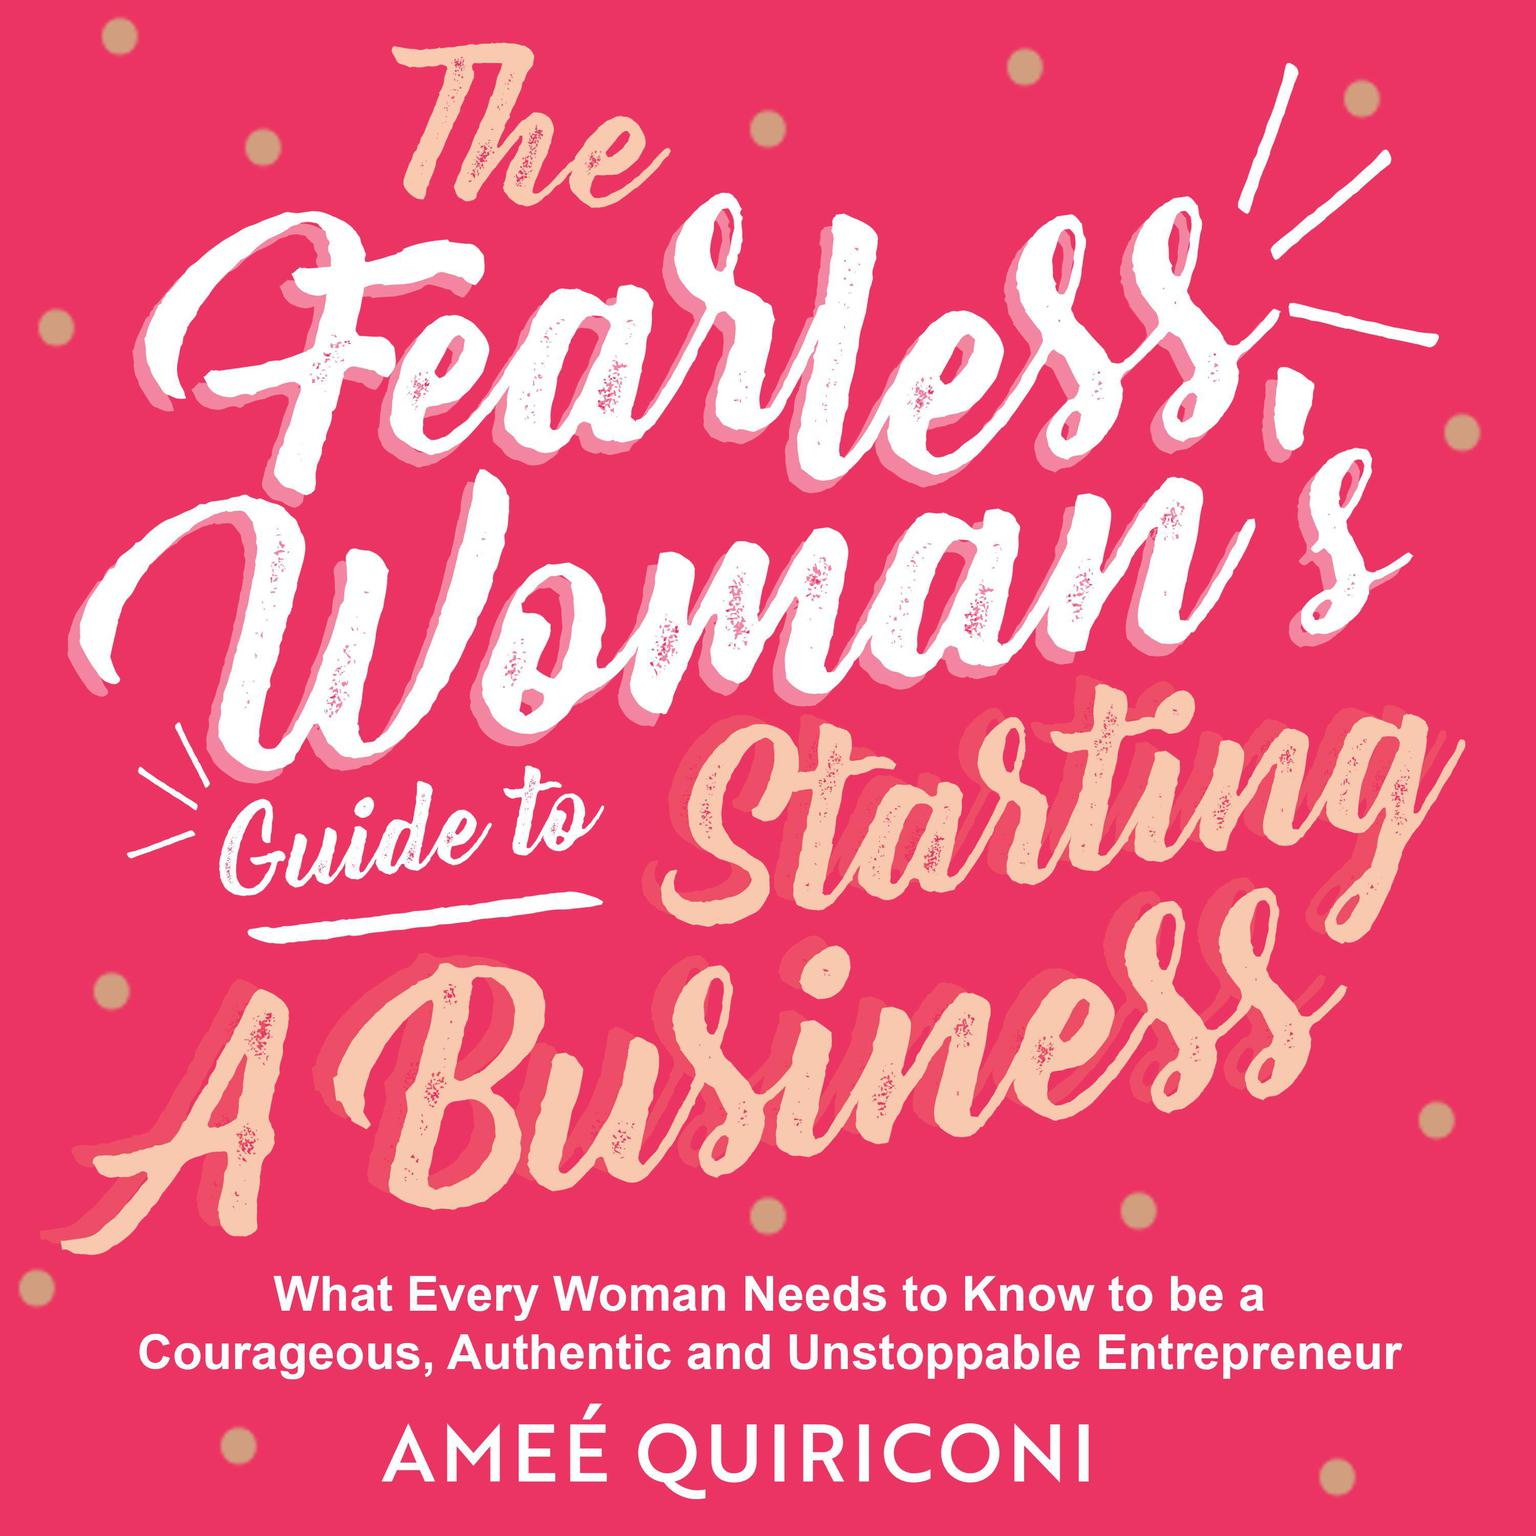 The Fearless Womans Guide to Starting a Business: What Every Woman Needs to Know to be a Courageous, Authentic and Unstoppable Entrepreneur Audiobook, by Ameé Quiriconi